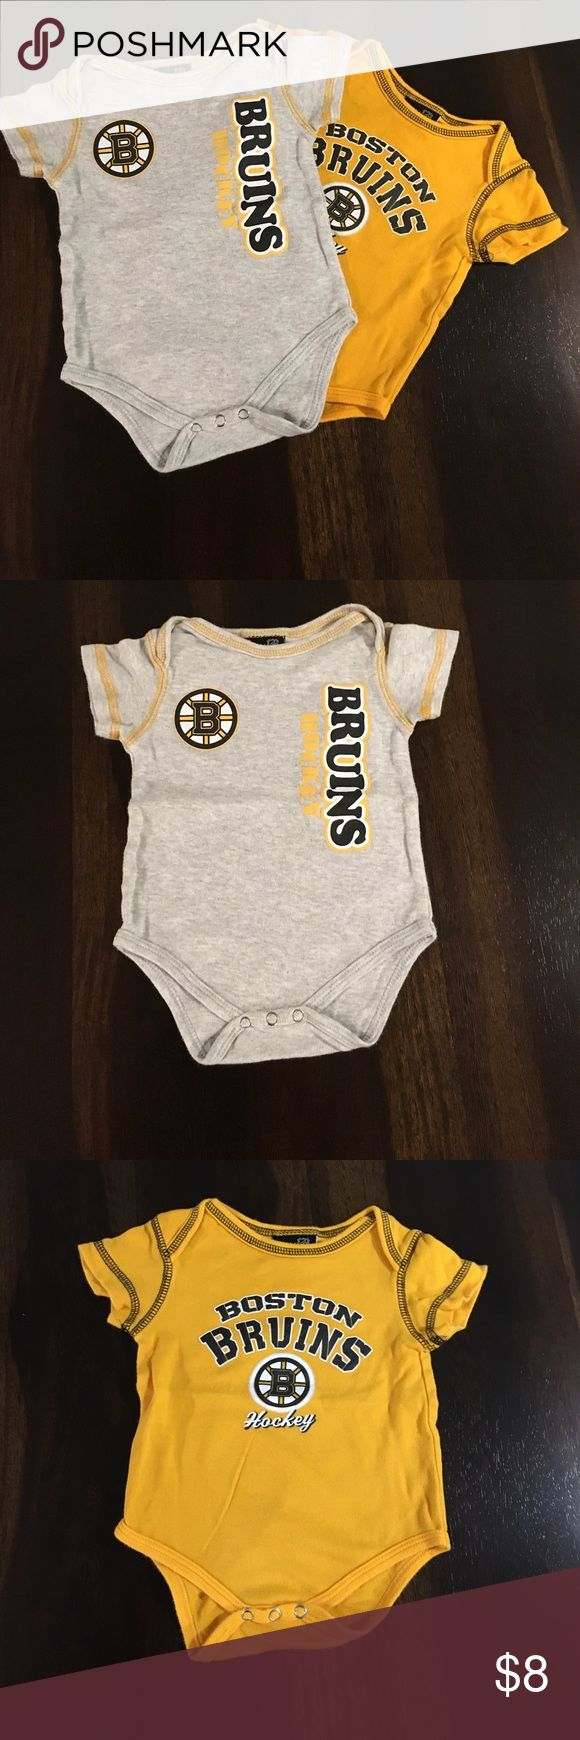 Bruins onesie 2pk Two Bruins onesies... great for you littlest hockey fan be it boy or girl!!! Normal wash wear. Comes from smoke free home! One Pieces Bodysuits